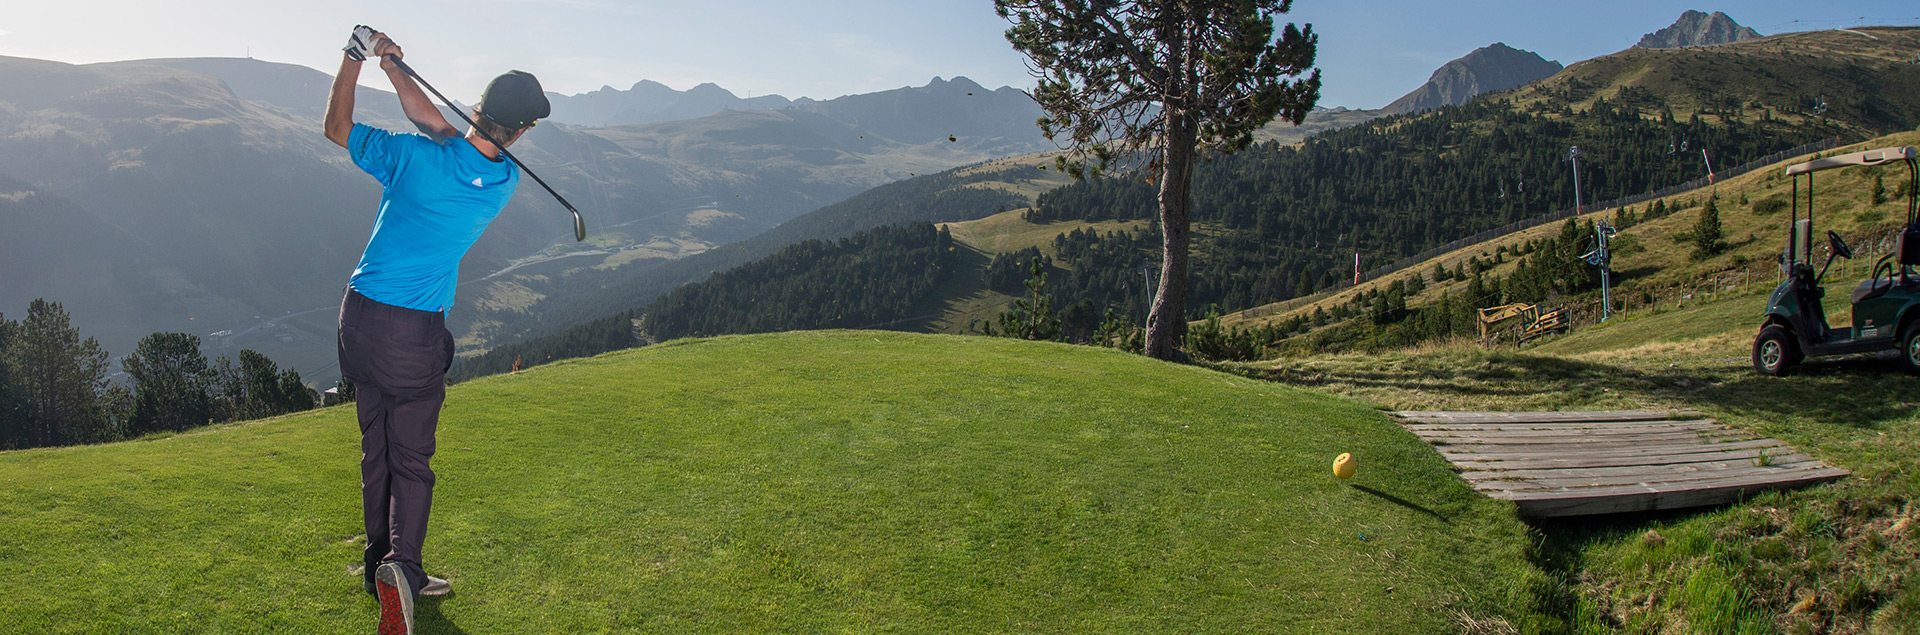 Hotel con green fee a Grandvalira Golf Soldeu incluido